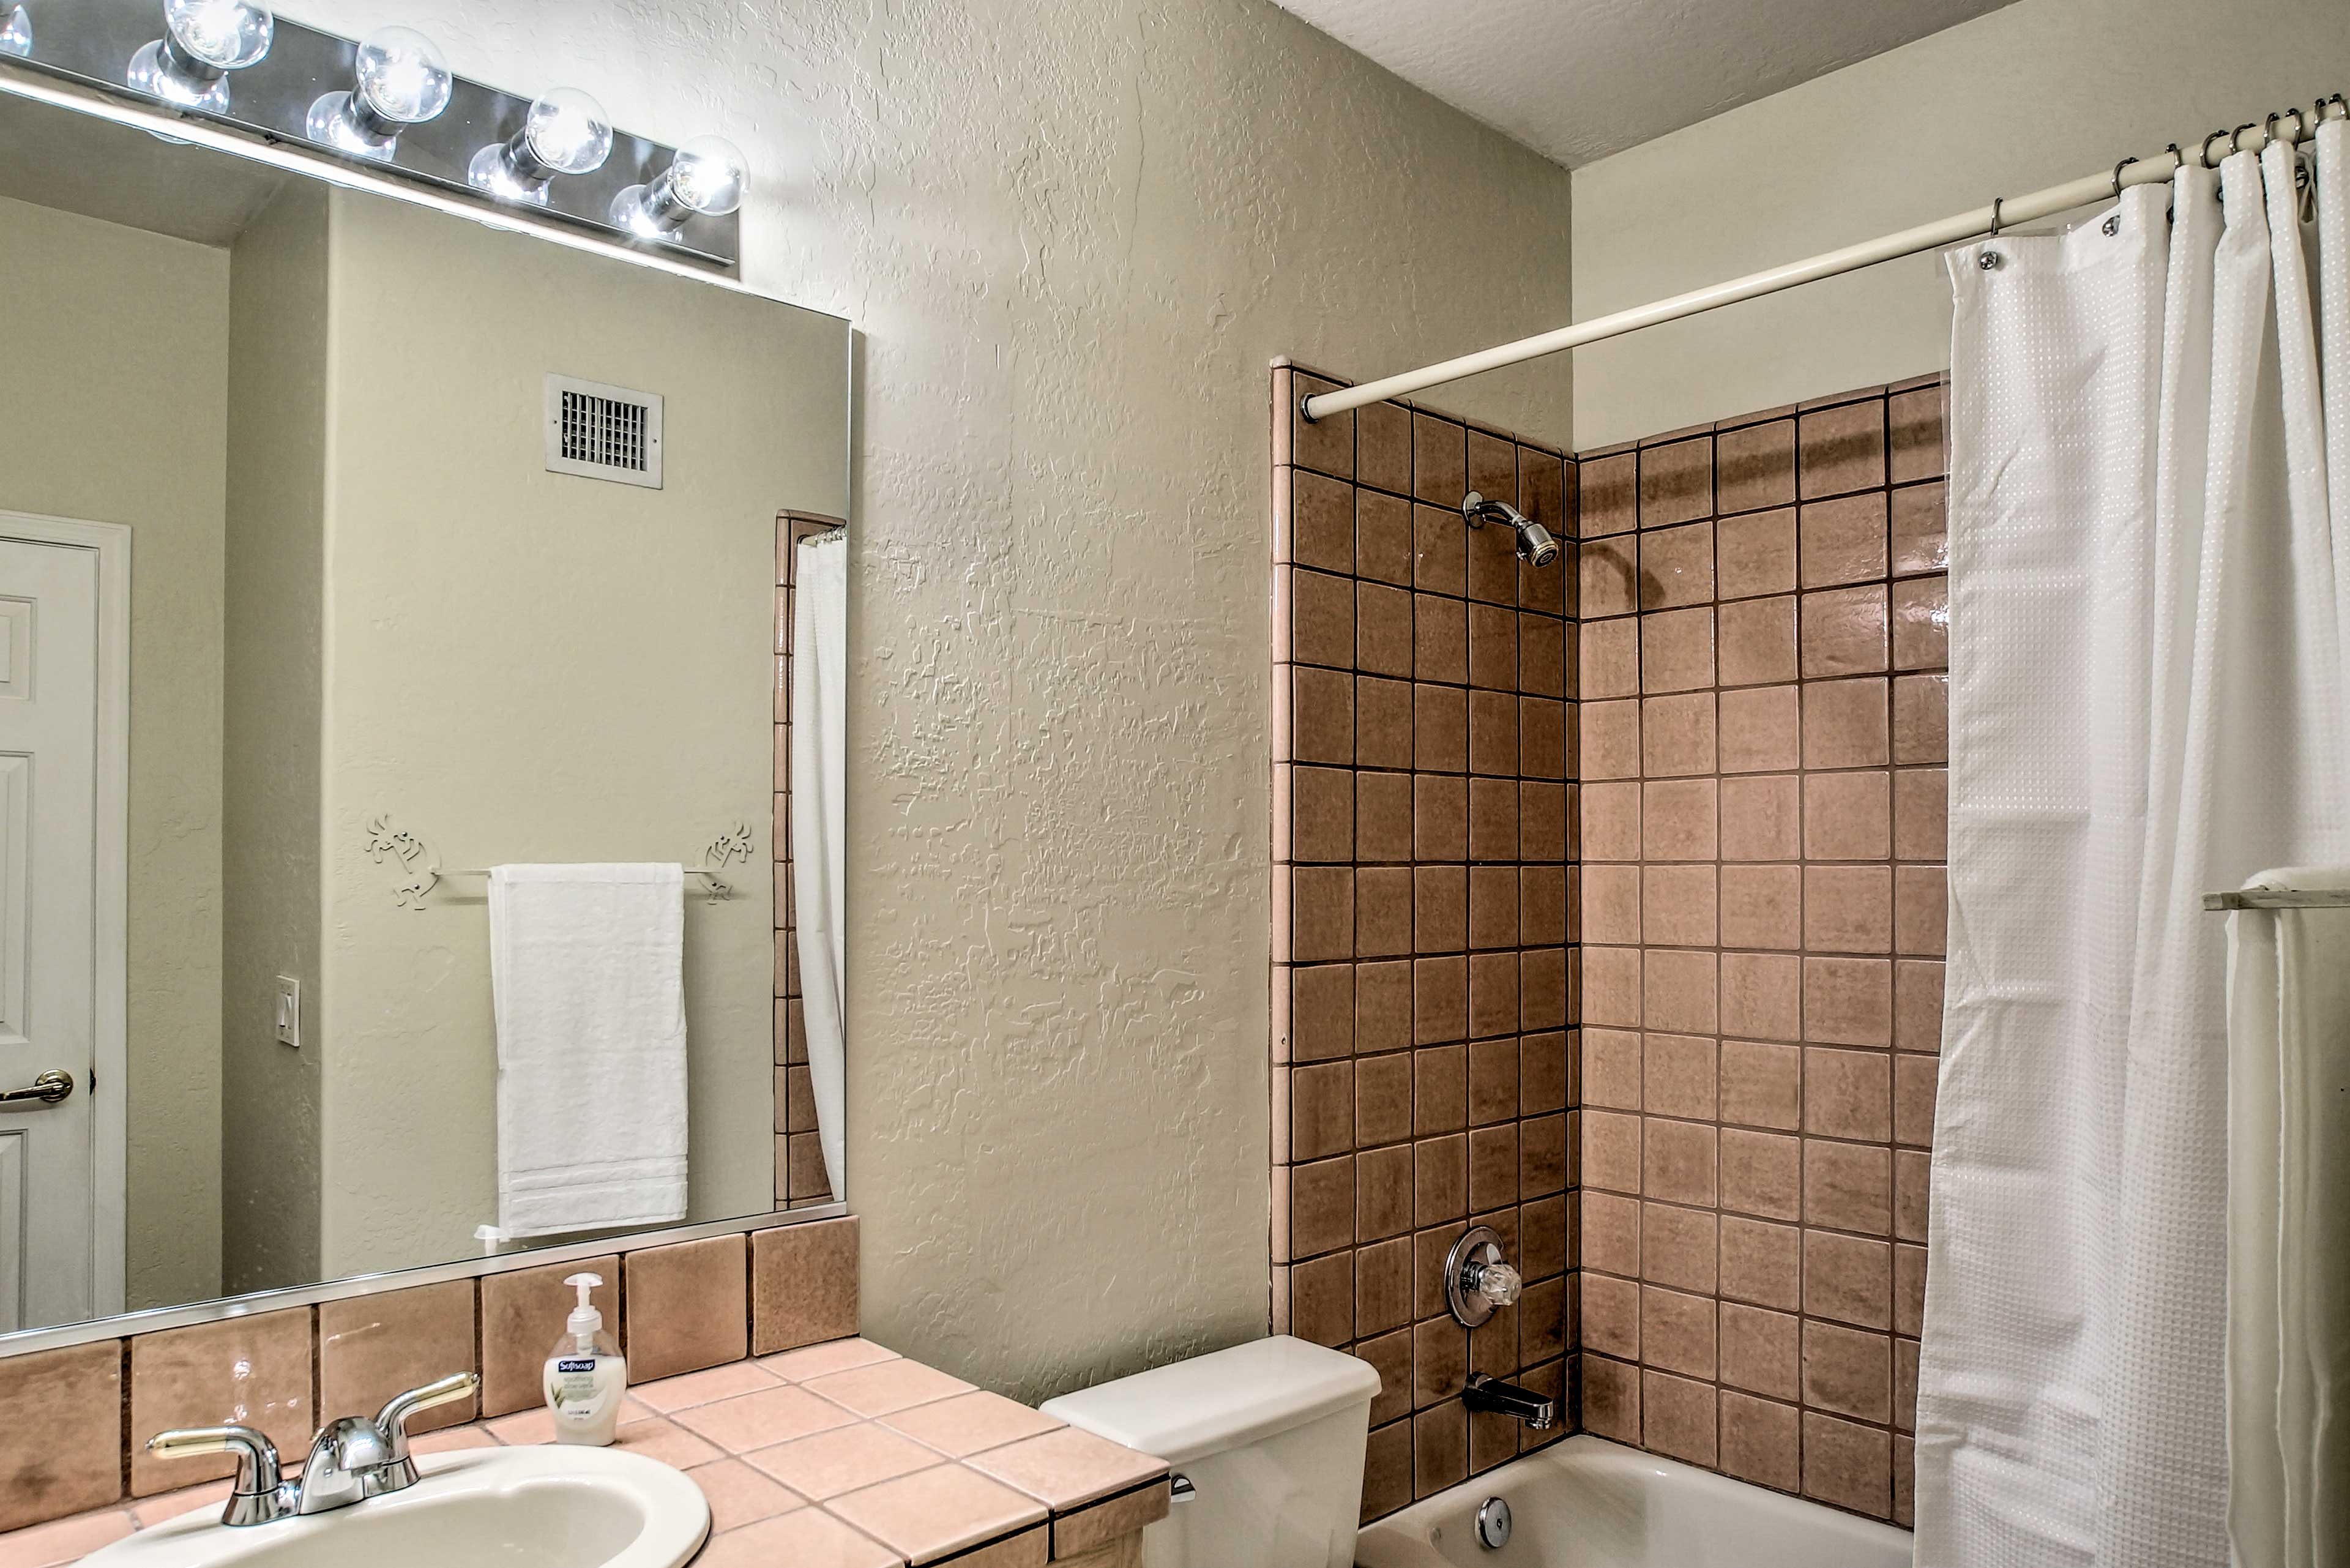 This bathroom features a shower/tub combination and ample lighting.